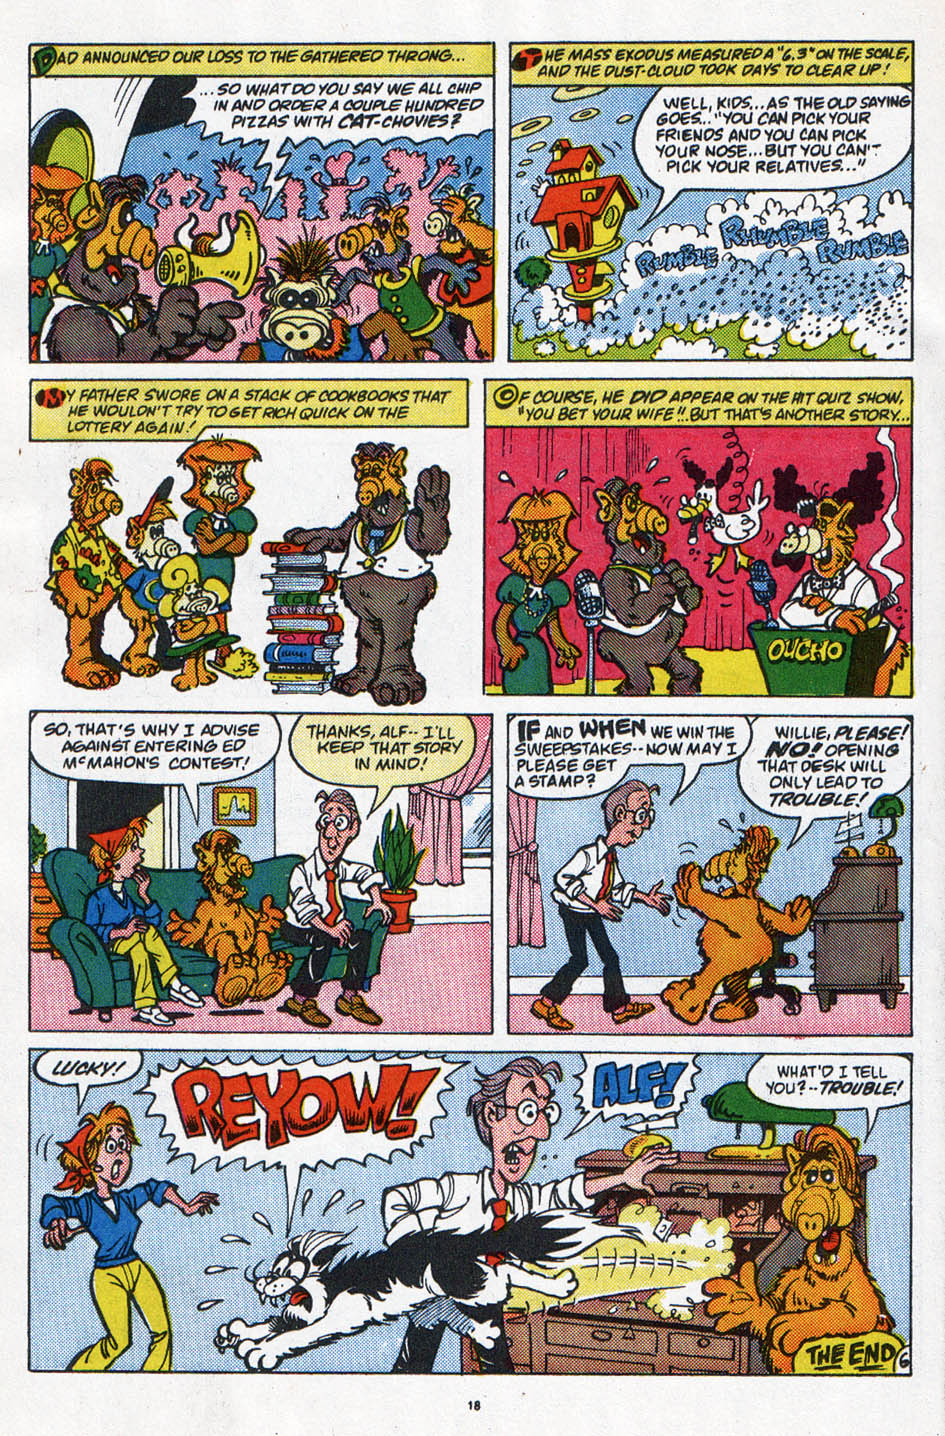 Read online ALF comic -  Issue #6 - 15